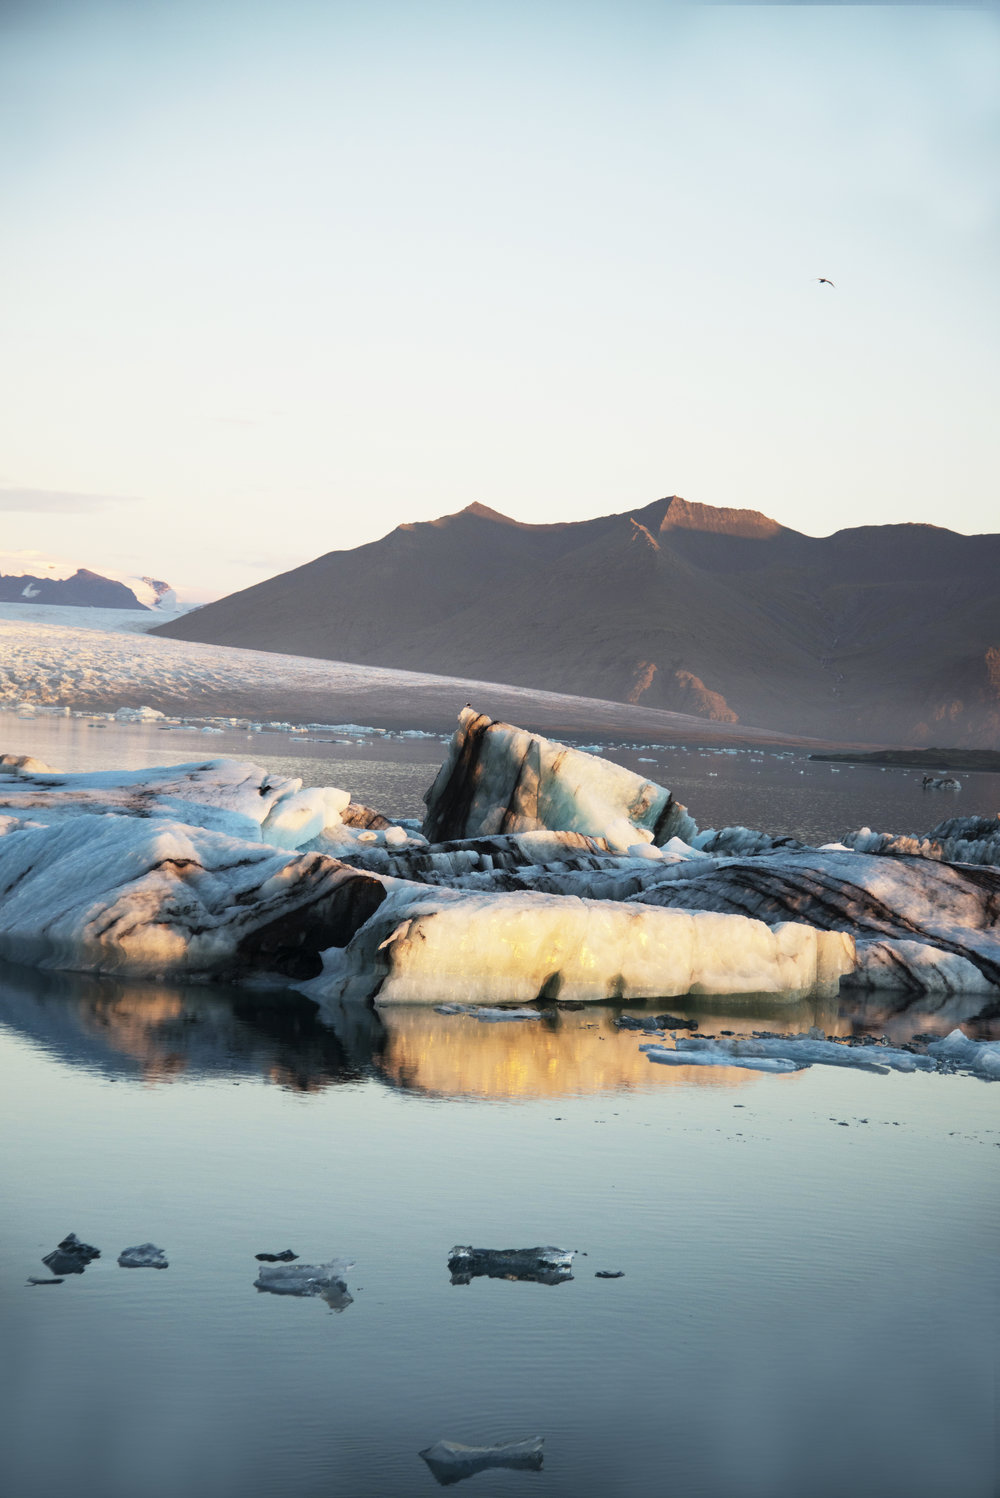 Sunrise at Jukosarlon Glacier Lagoon in Iceland.jpg